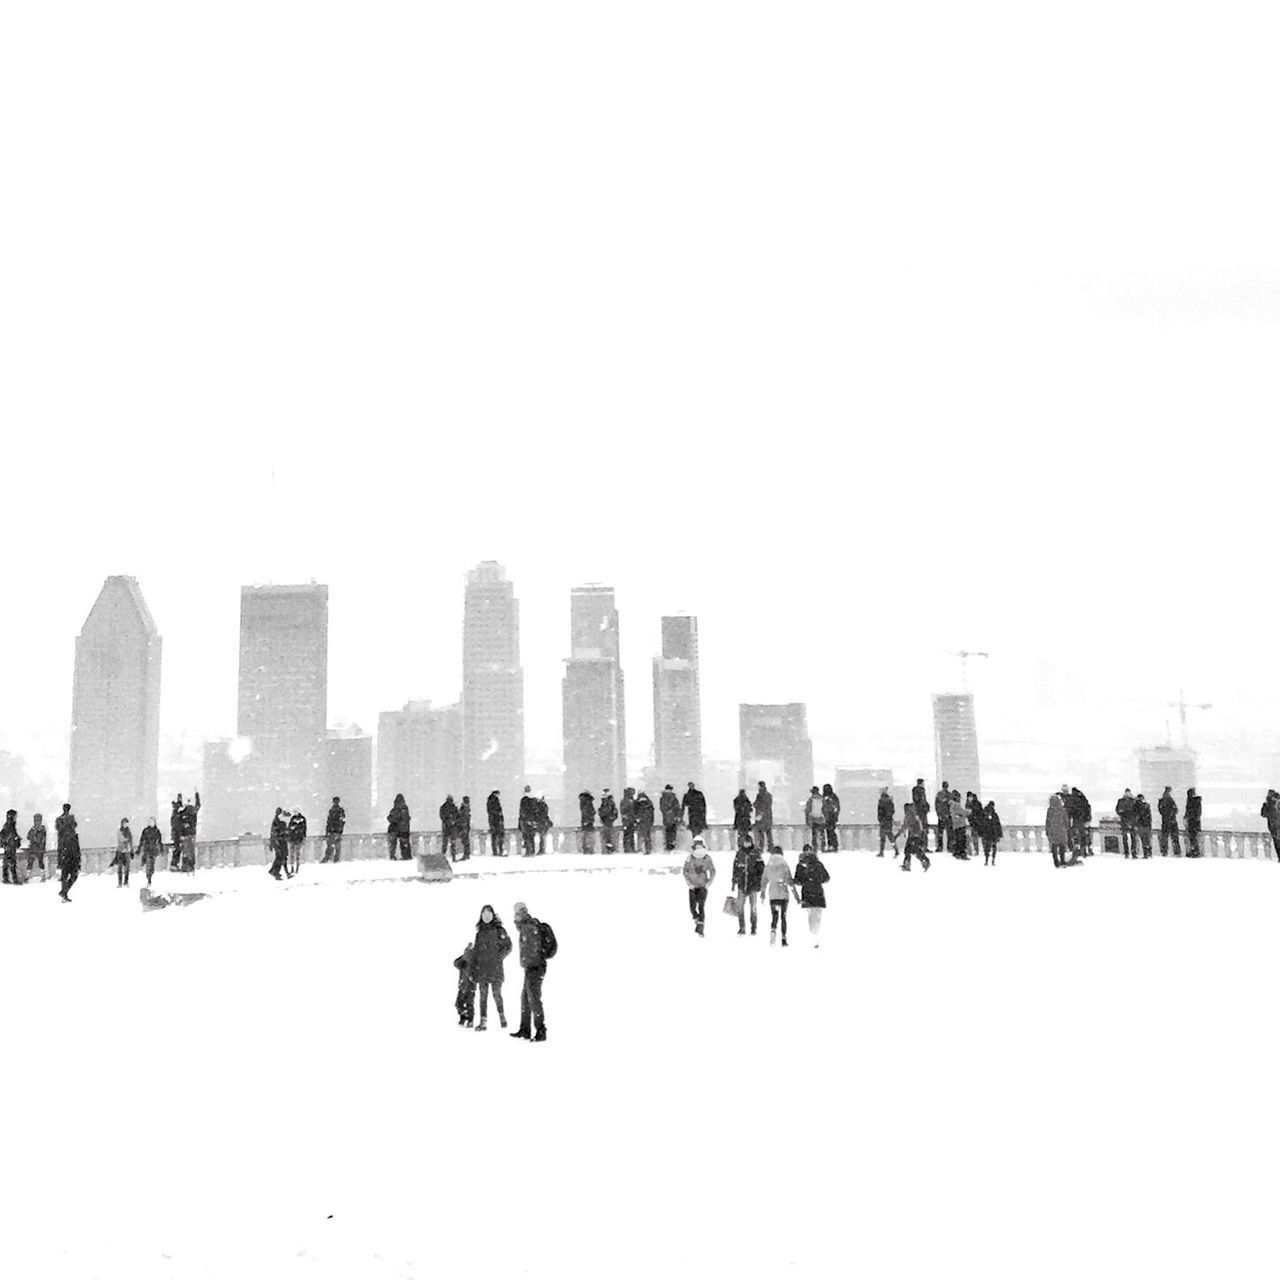 Large Group Of People City Architecture Winter Blackandwhite Streetphoto_bw Week On Eyeem Cold Temperature Silhouette